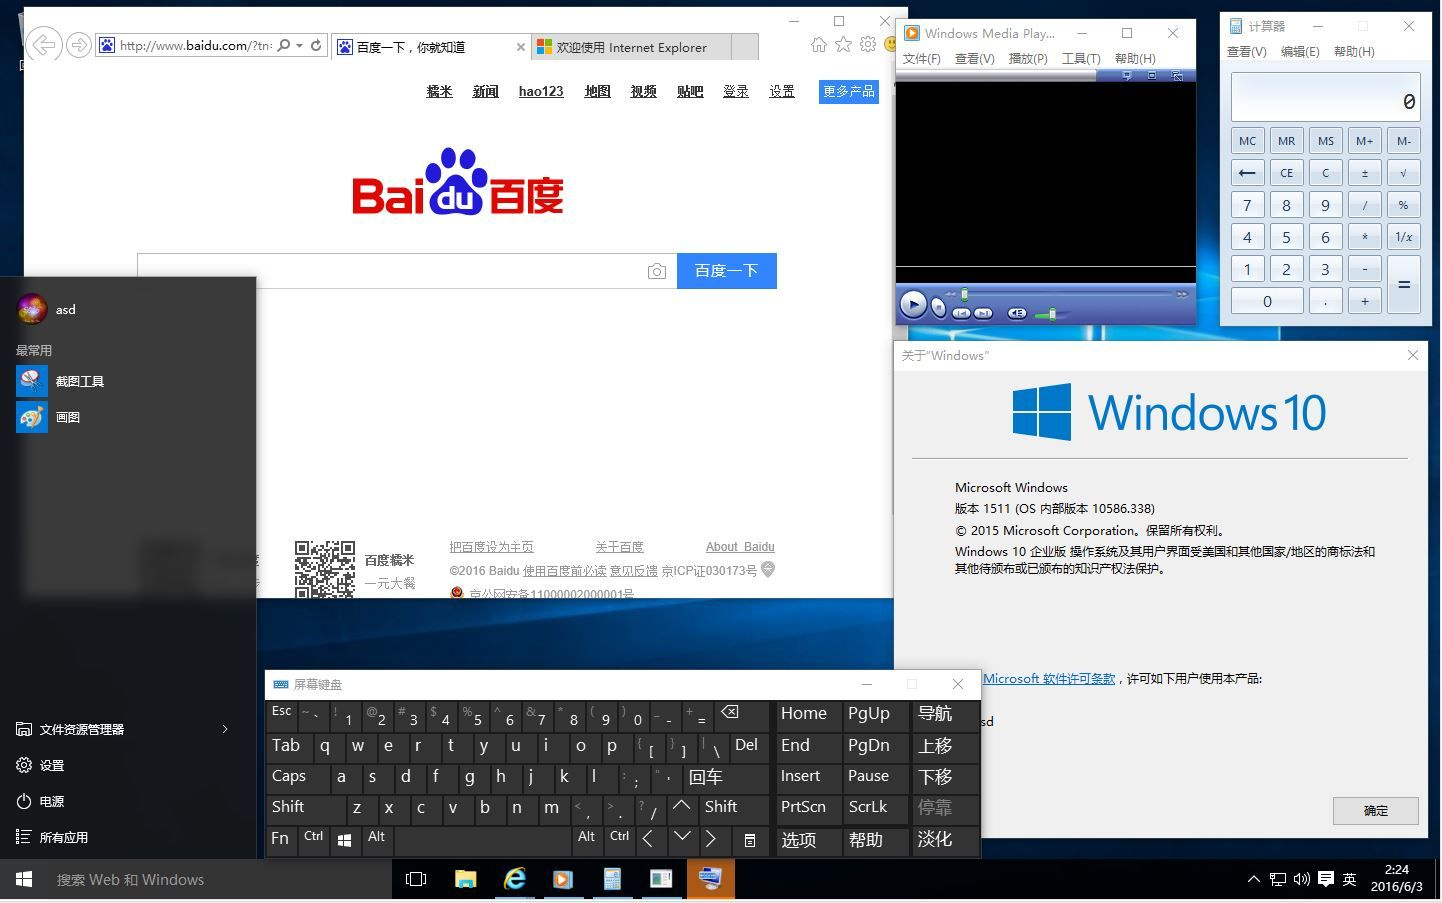 Windows 10 Enterprise 10586.338 th2 x86-x64 ZH-CN Micro 3